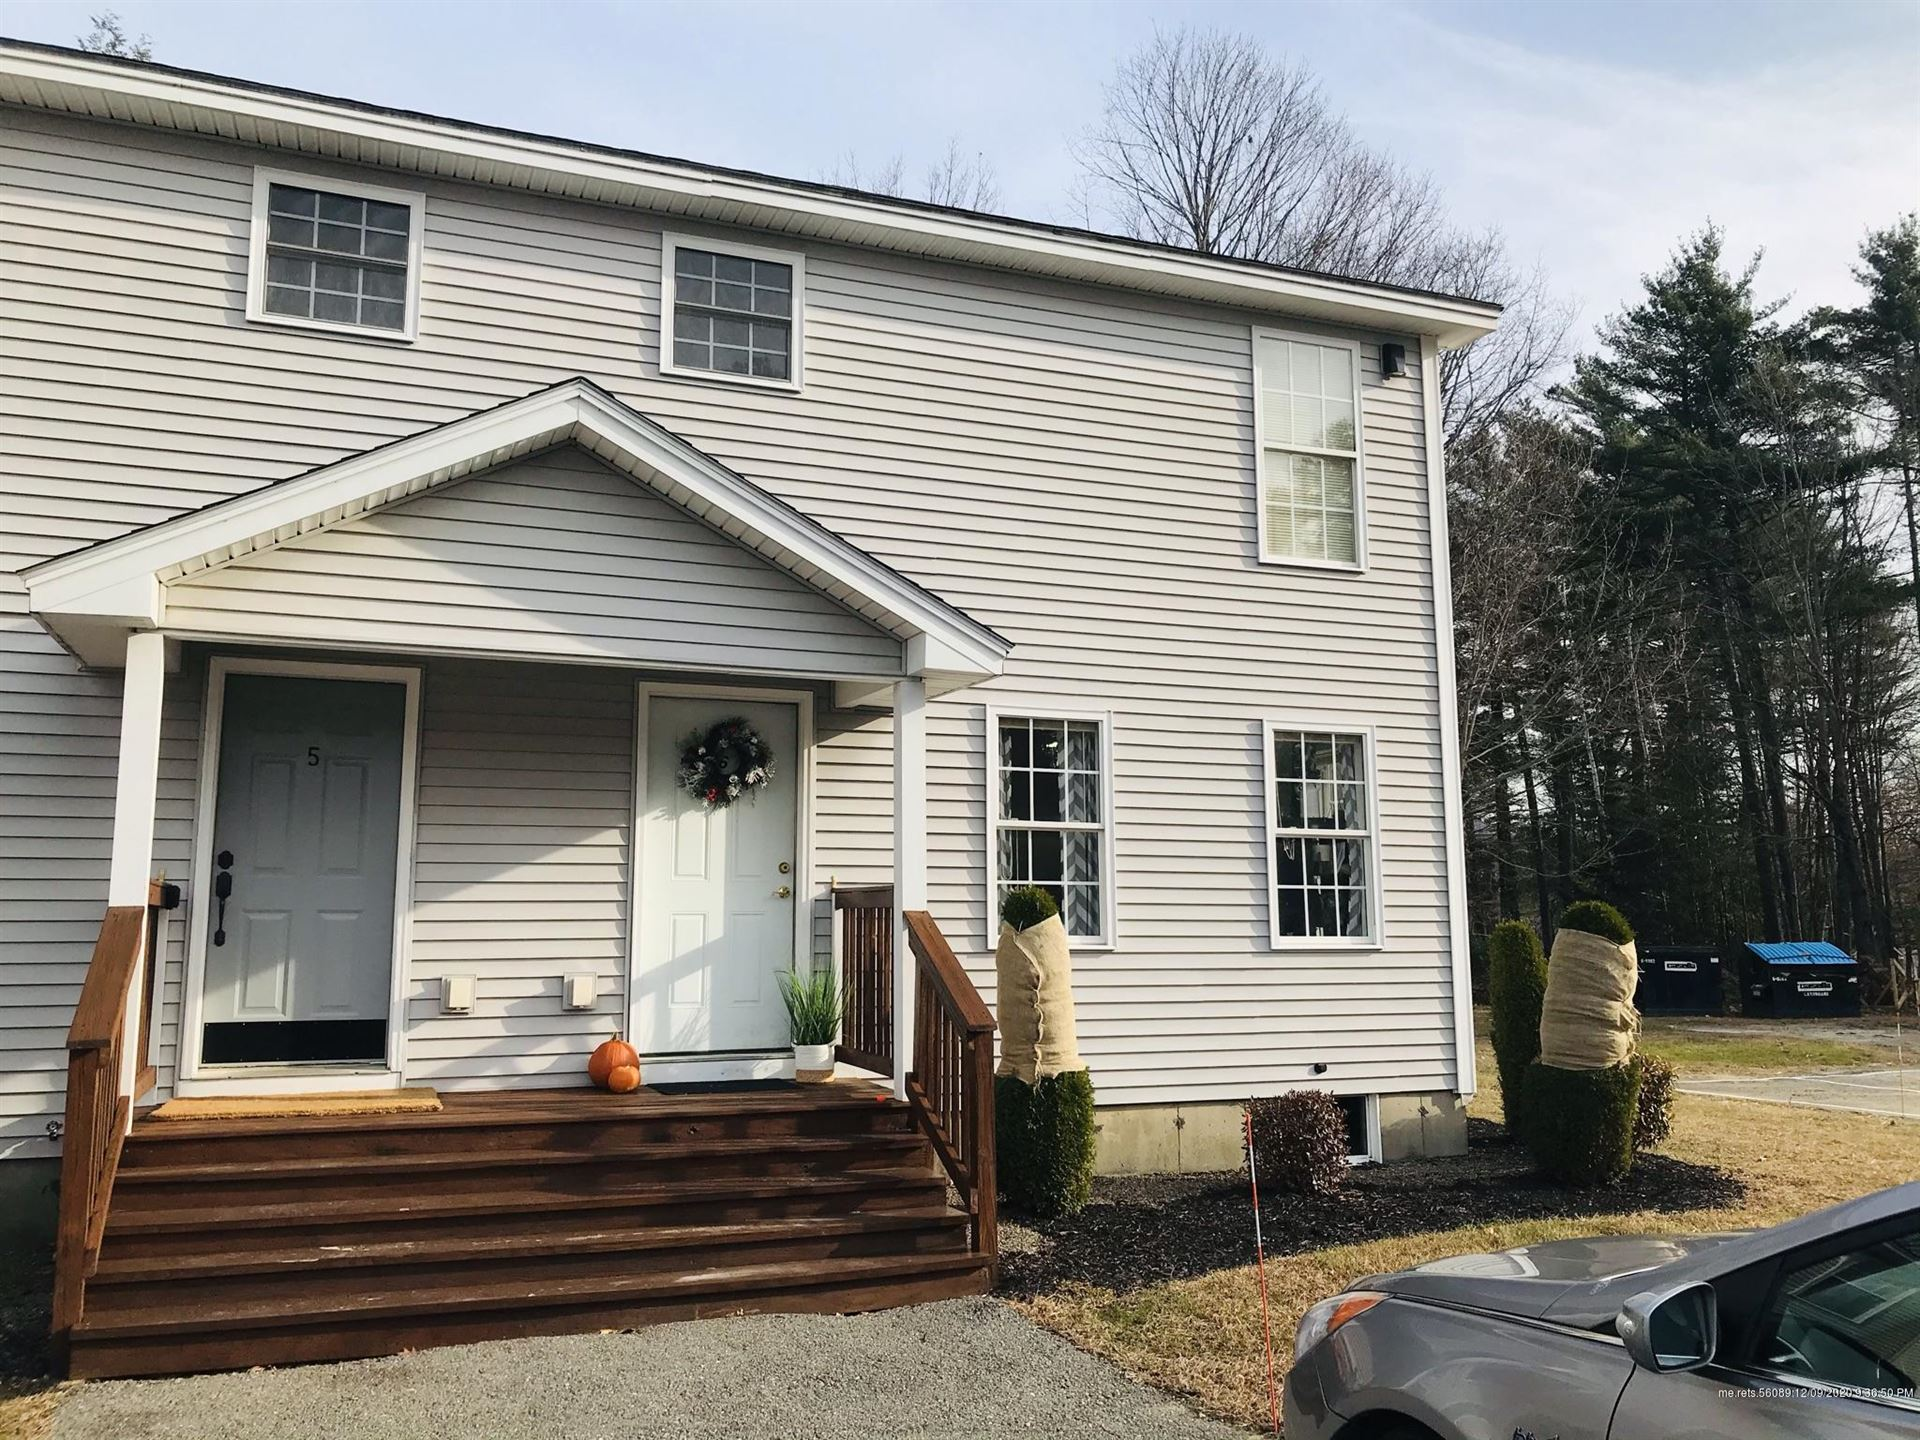 Photo of 322 Stillwater Ave #6, Old Town, ME 04468 (MLS # 1476914)